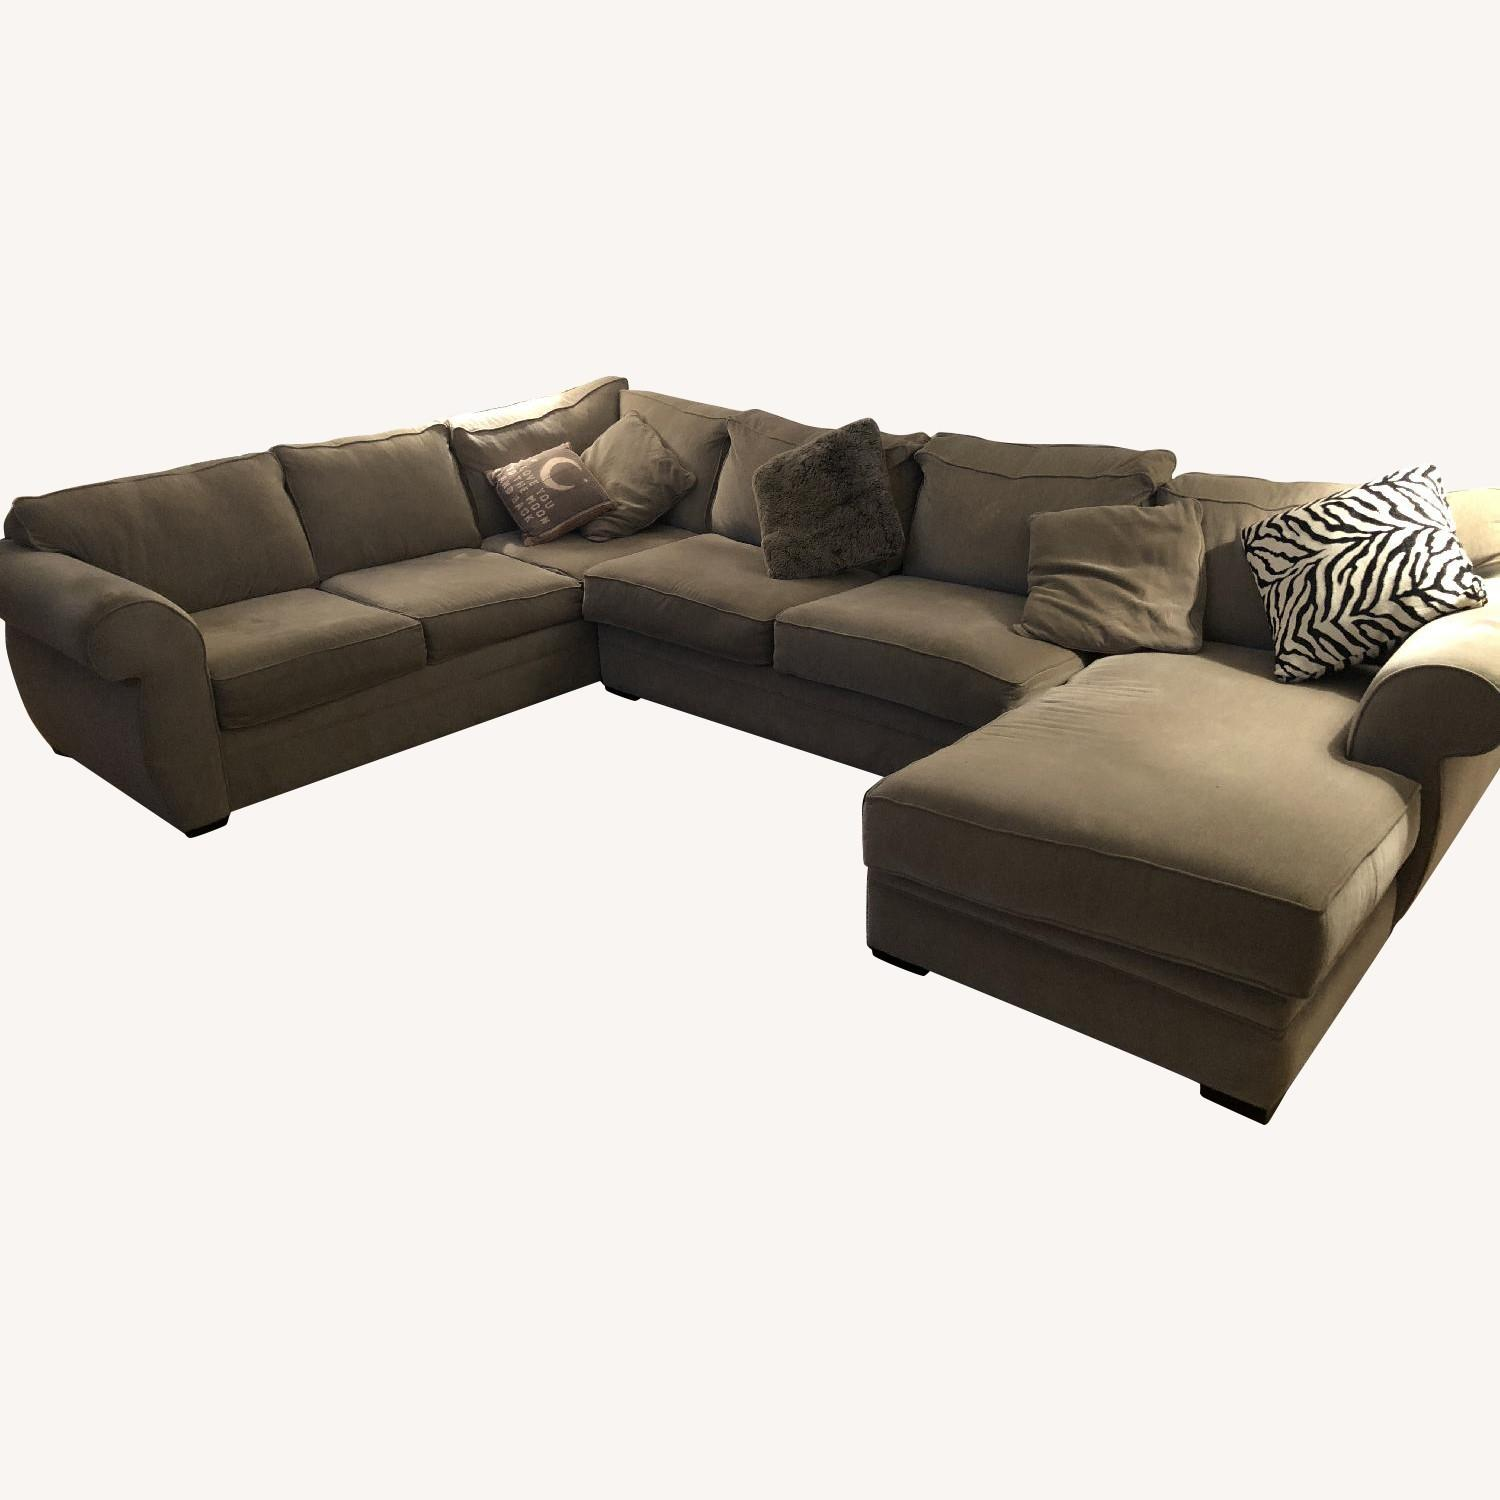 Incredible Macys 3 Piece Beige Fabric Chaise Sectional Sofa Aptdeco Gamerscity Chair Design For Home Gamerscityorg